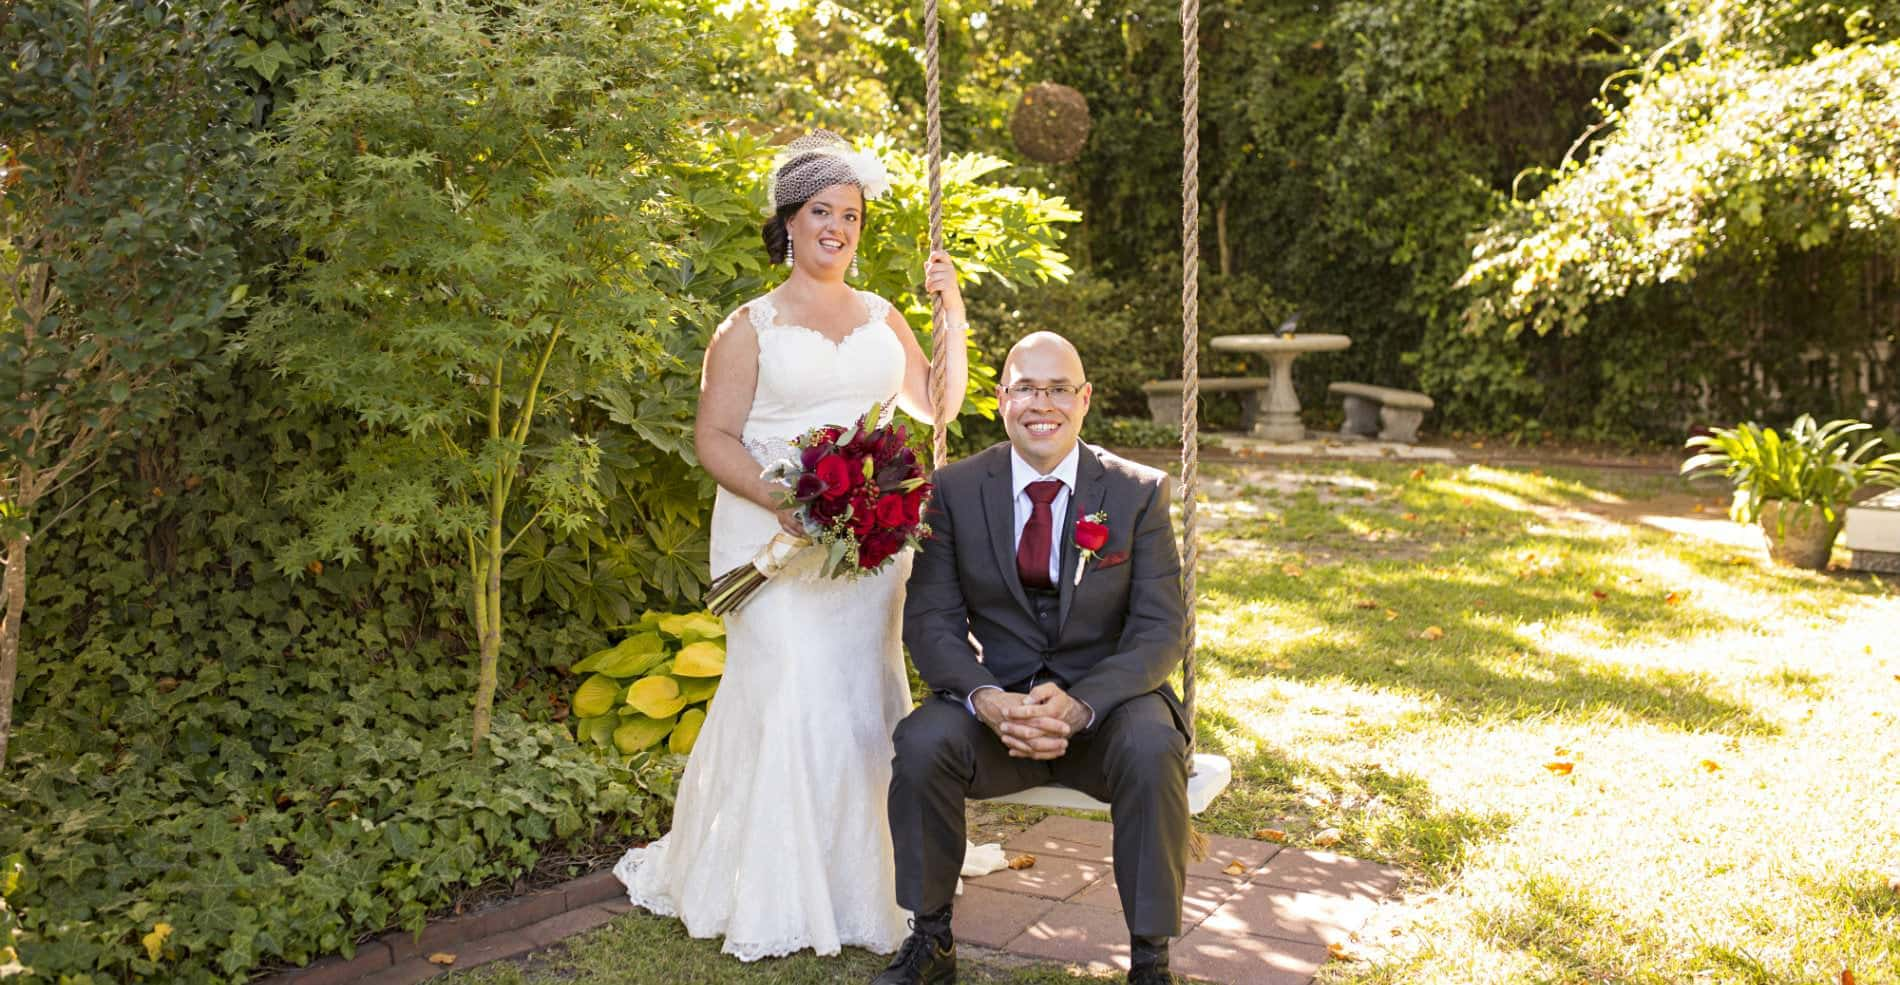 A groom sits on the treeswing with his beautiful bride standing beside him holding a lovely bouquet of red flowers